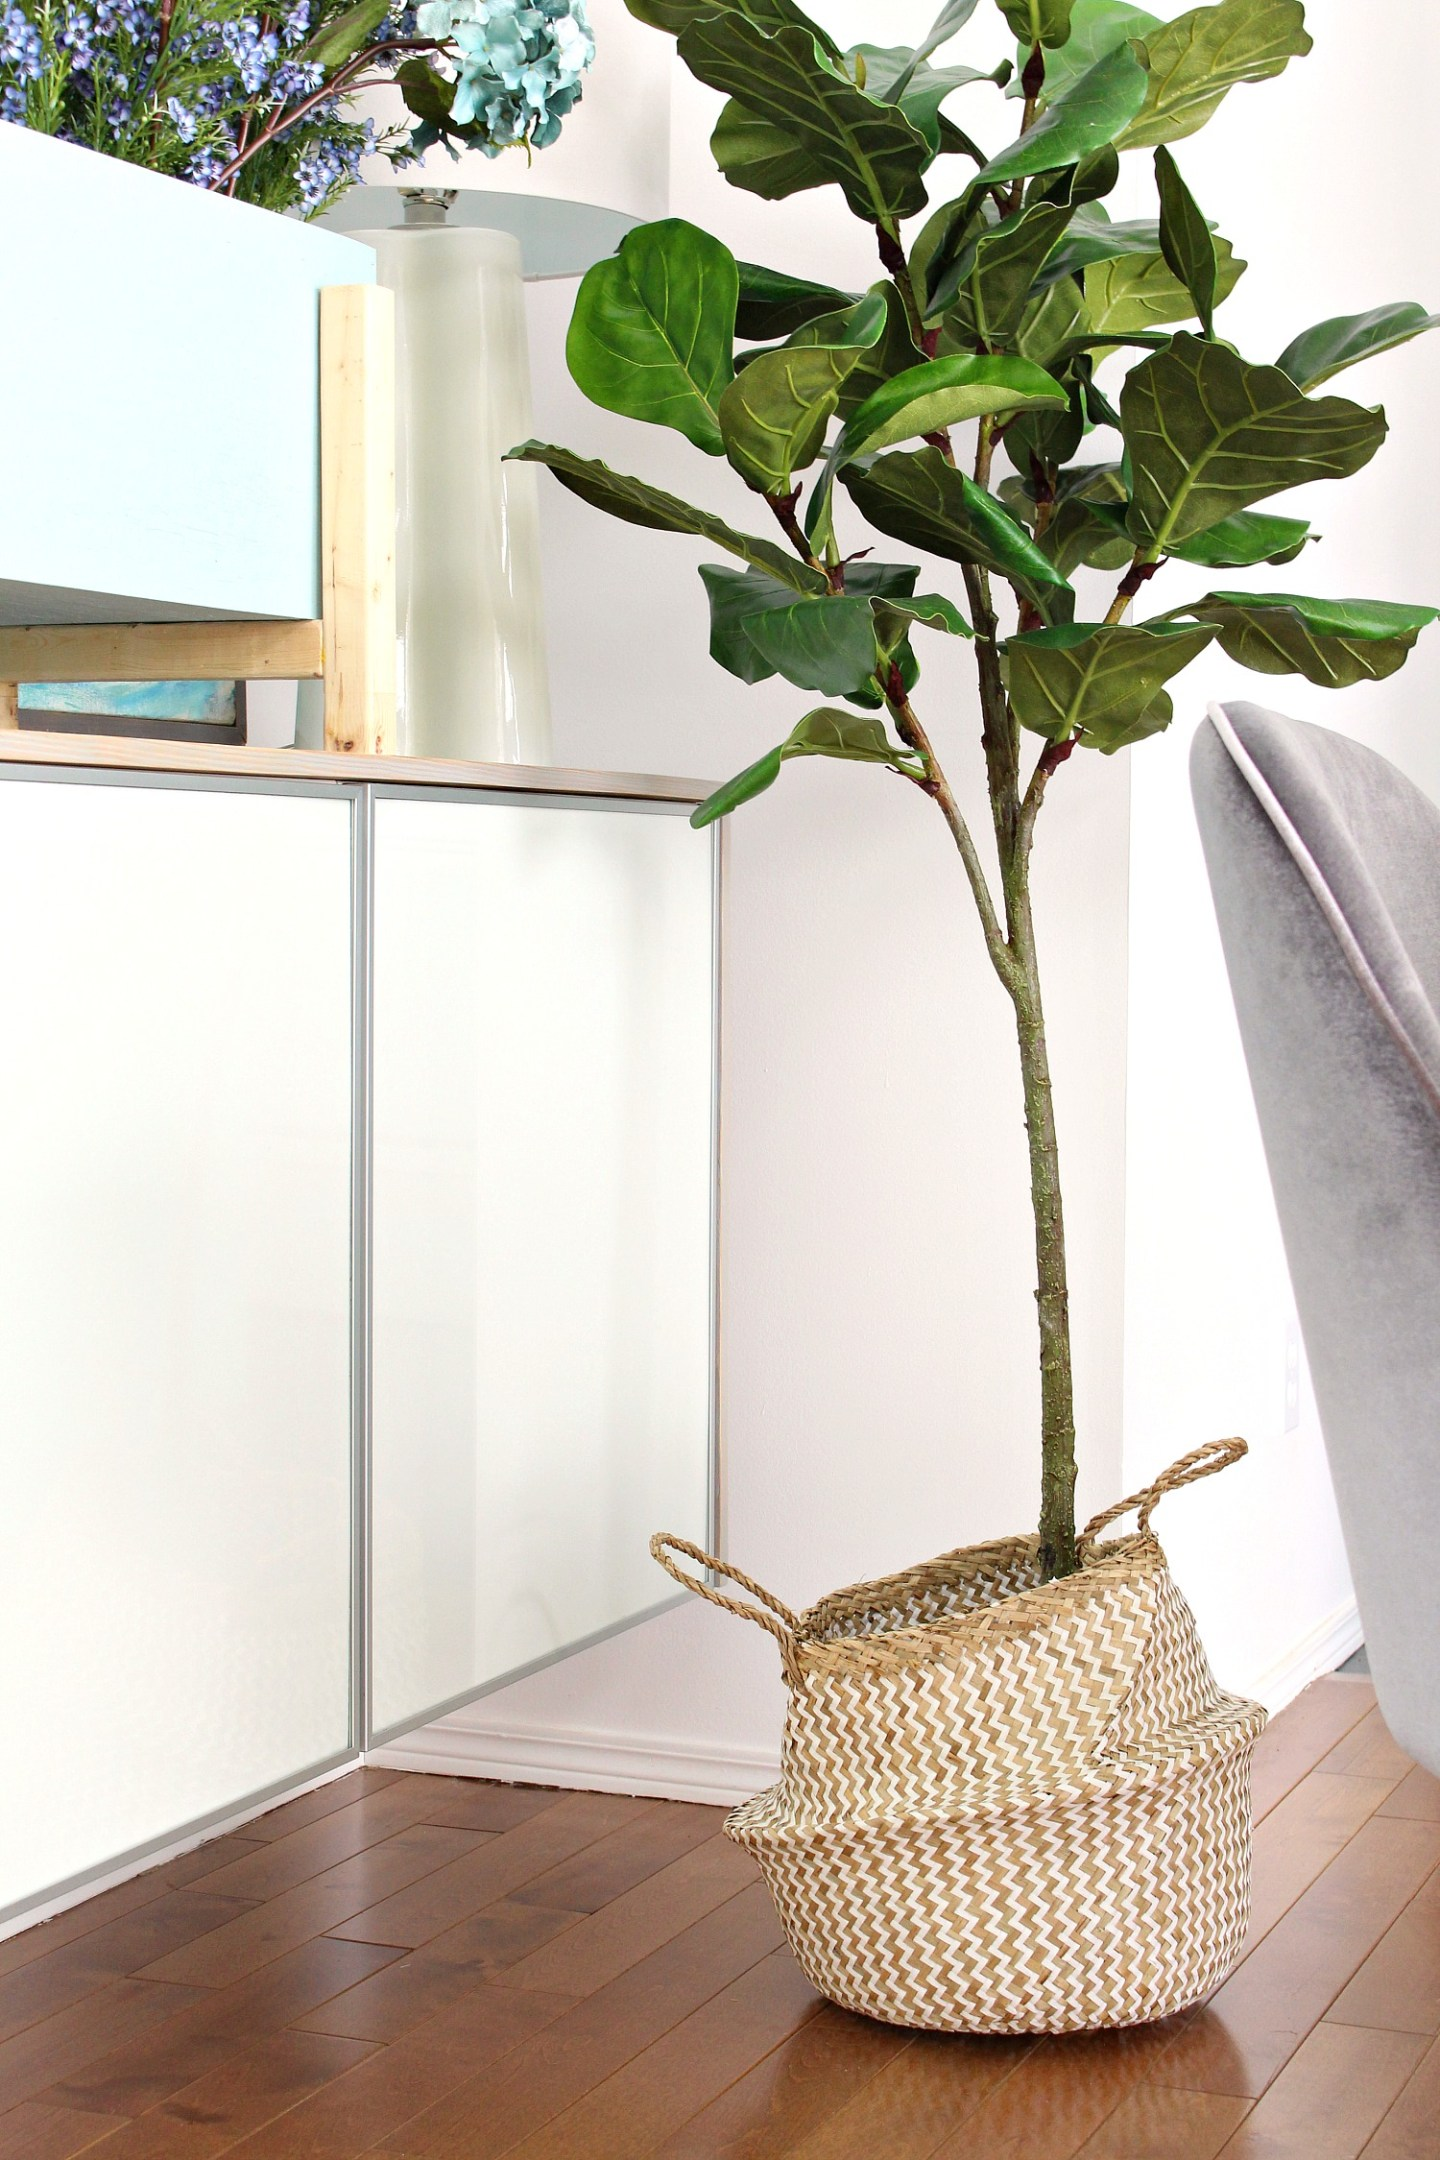 Fiddle Leaf Fig in a Basket